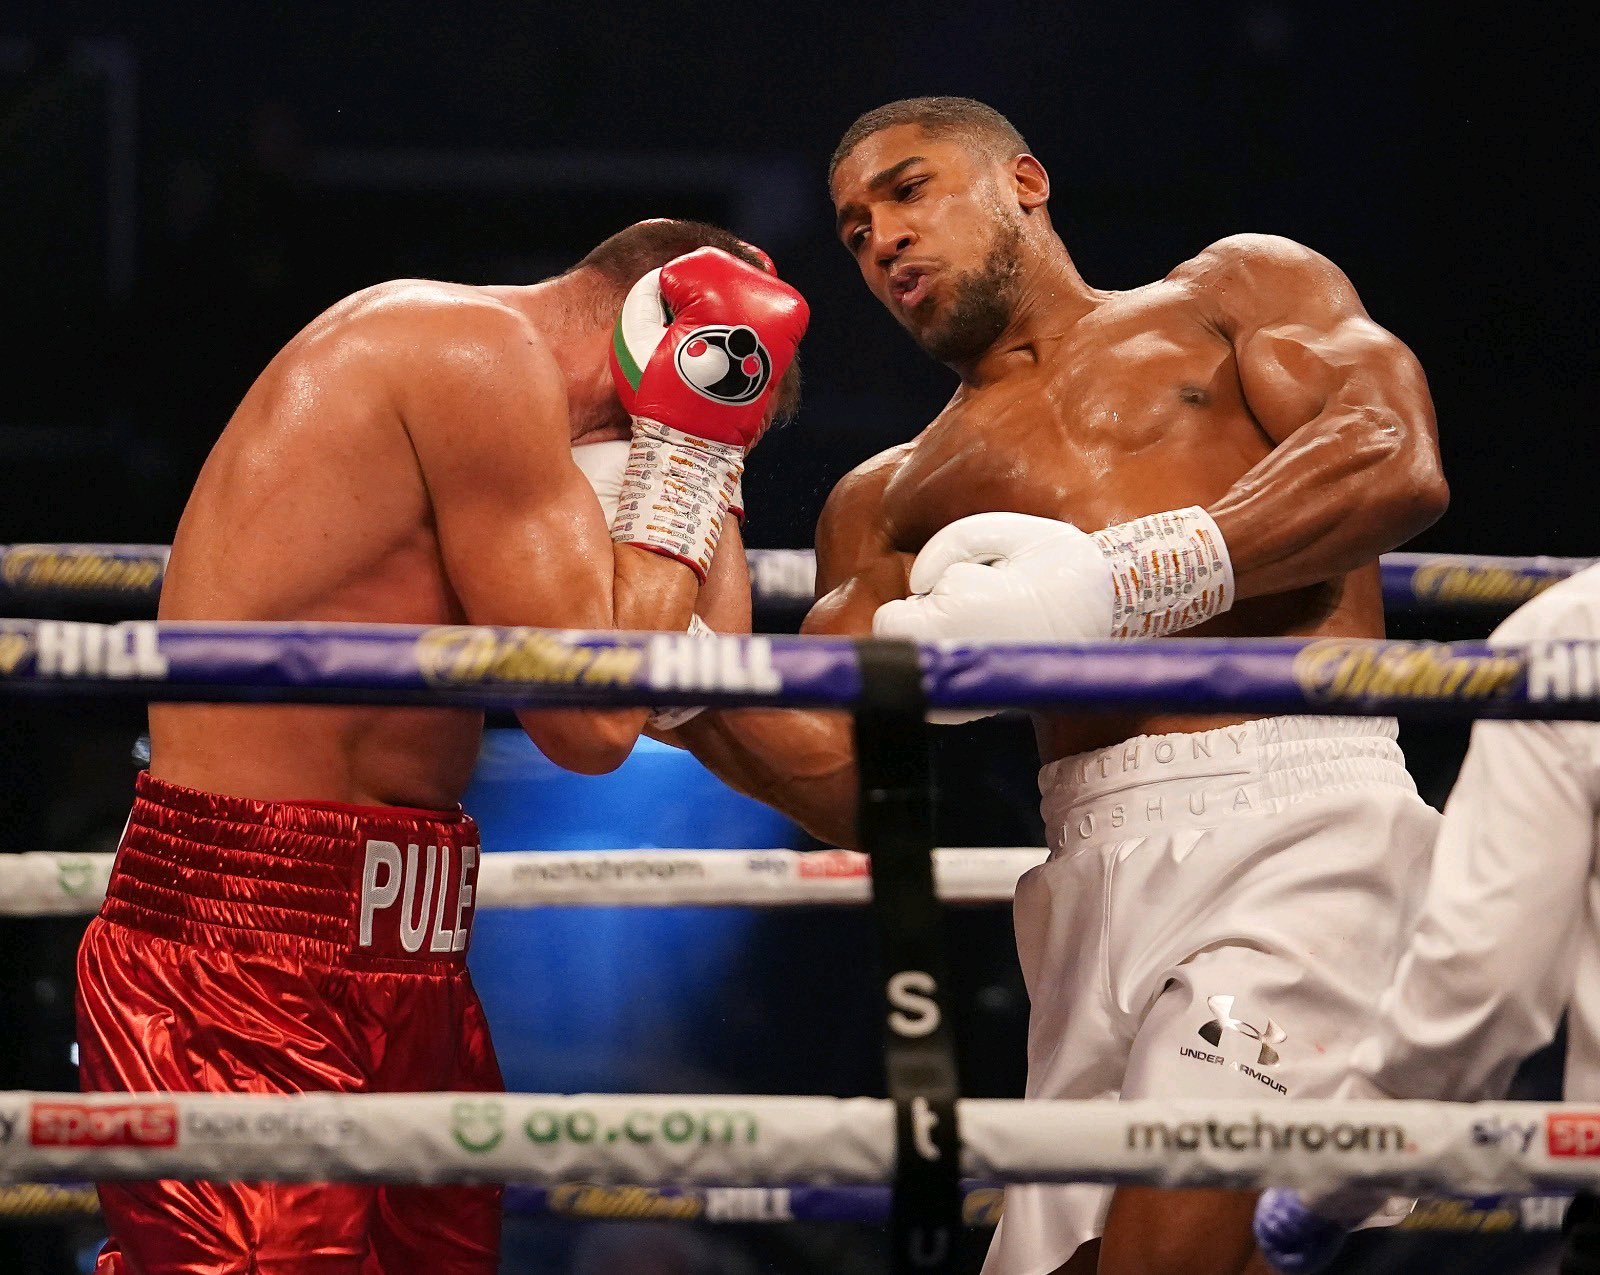 Anthony Joshua defeats Kubrat Pulev in 9 rounds to  retain his IBF, WBA and WBO belts With a KO#JoshuaPulev (videos)